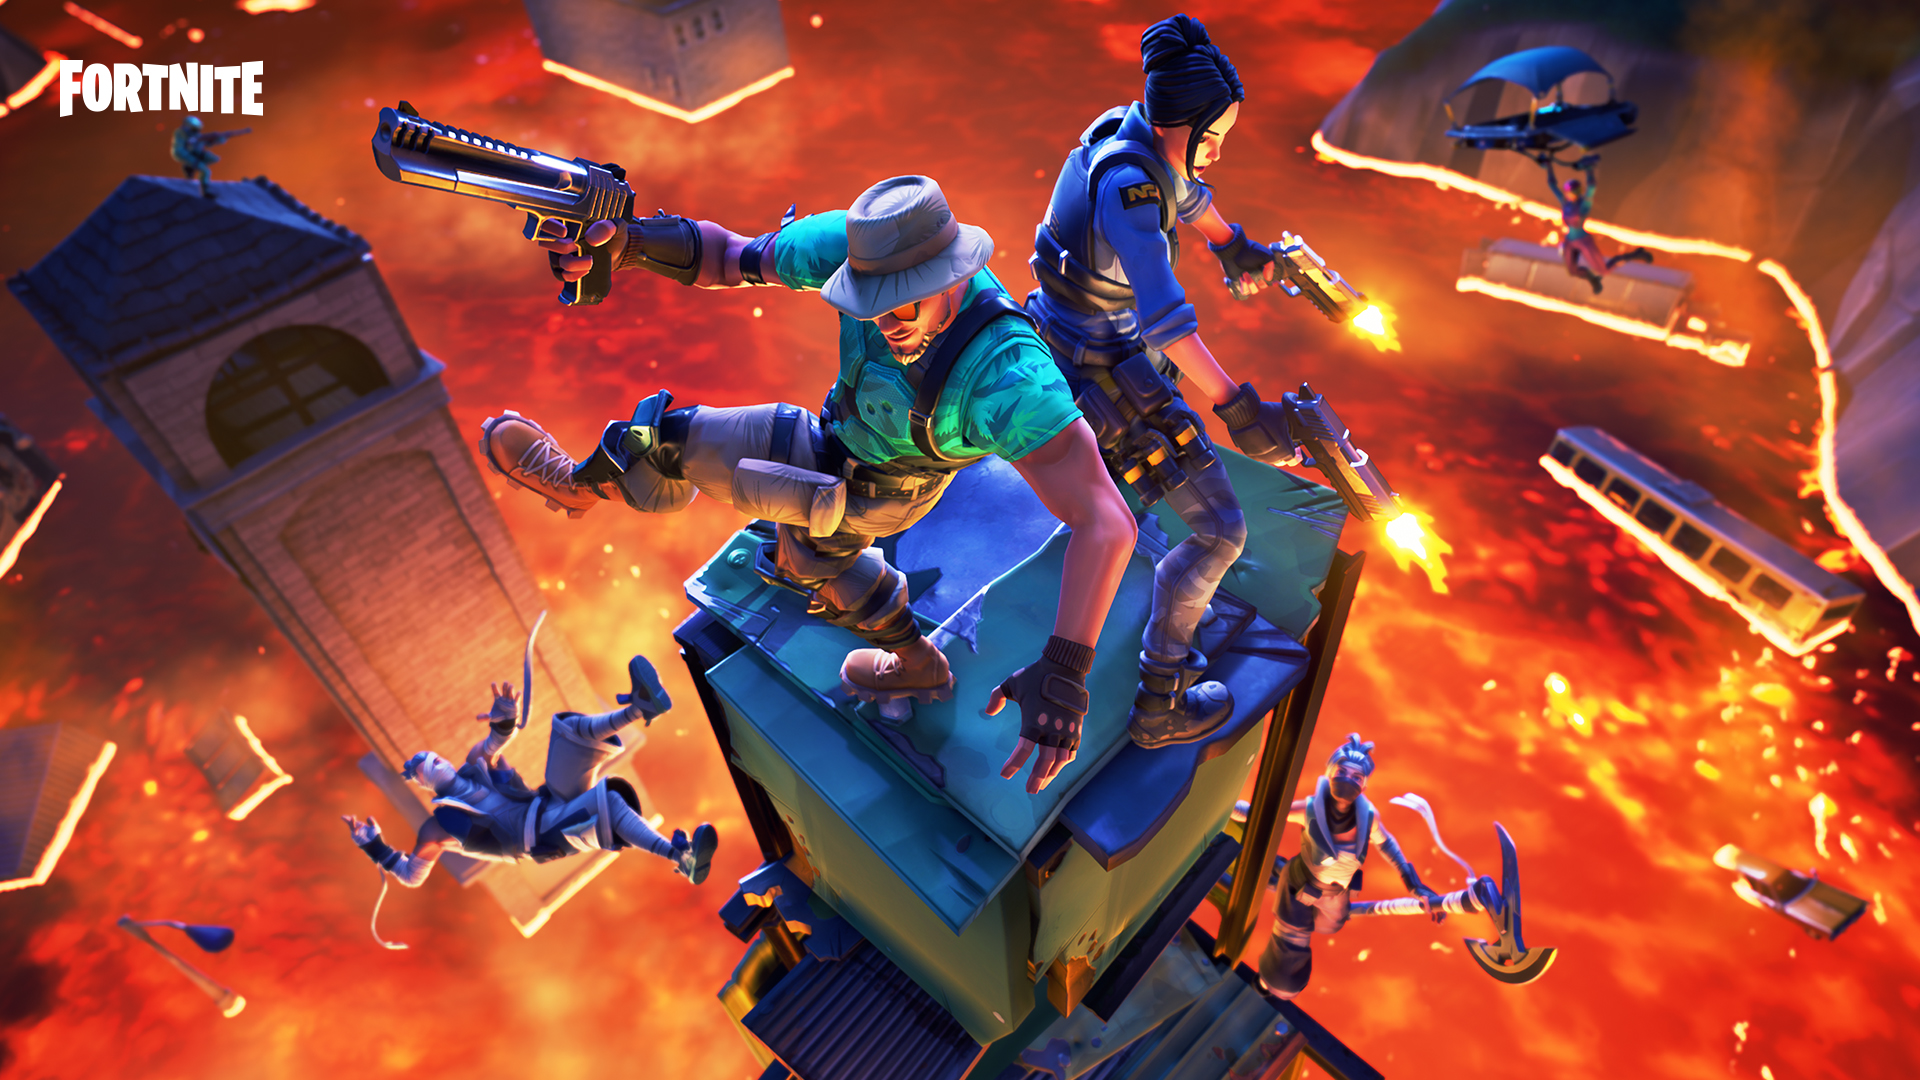 Fortnite fully dedicates to ranked in today's Patch 8.20 image